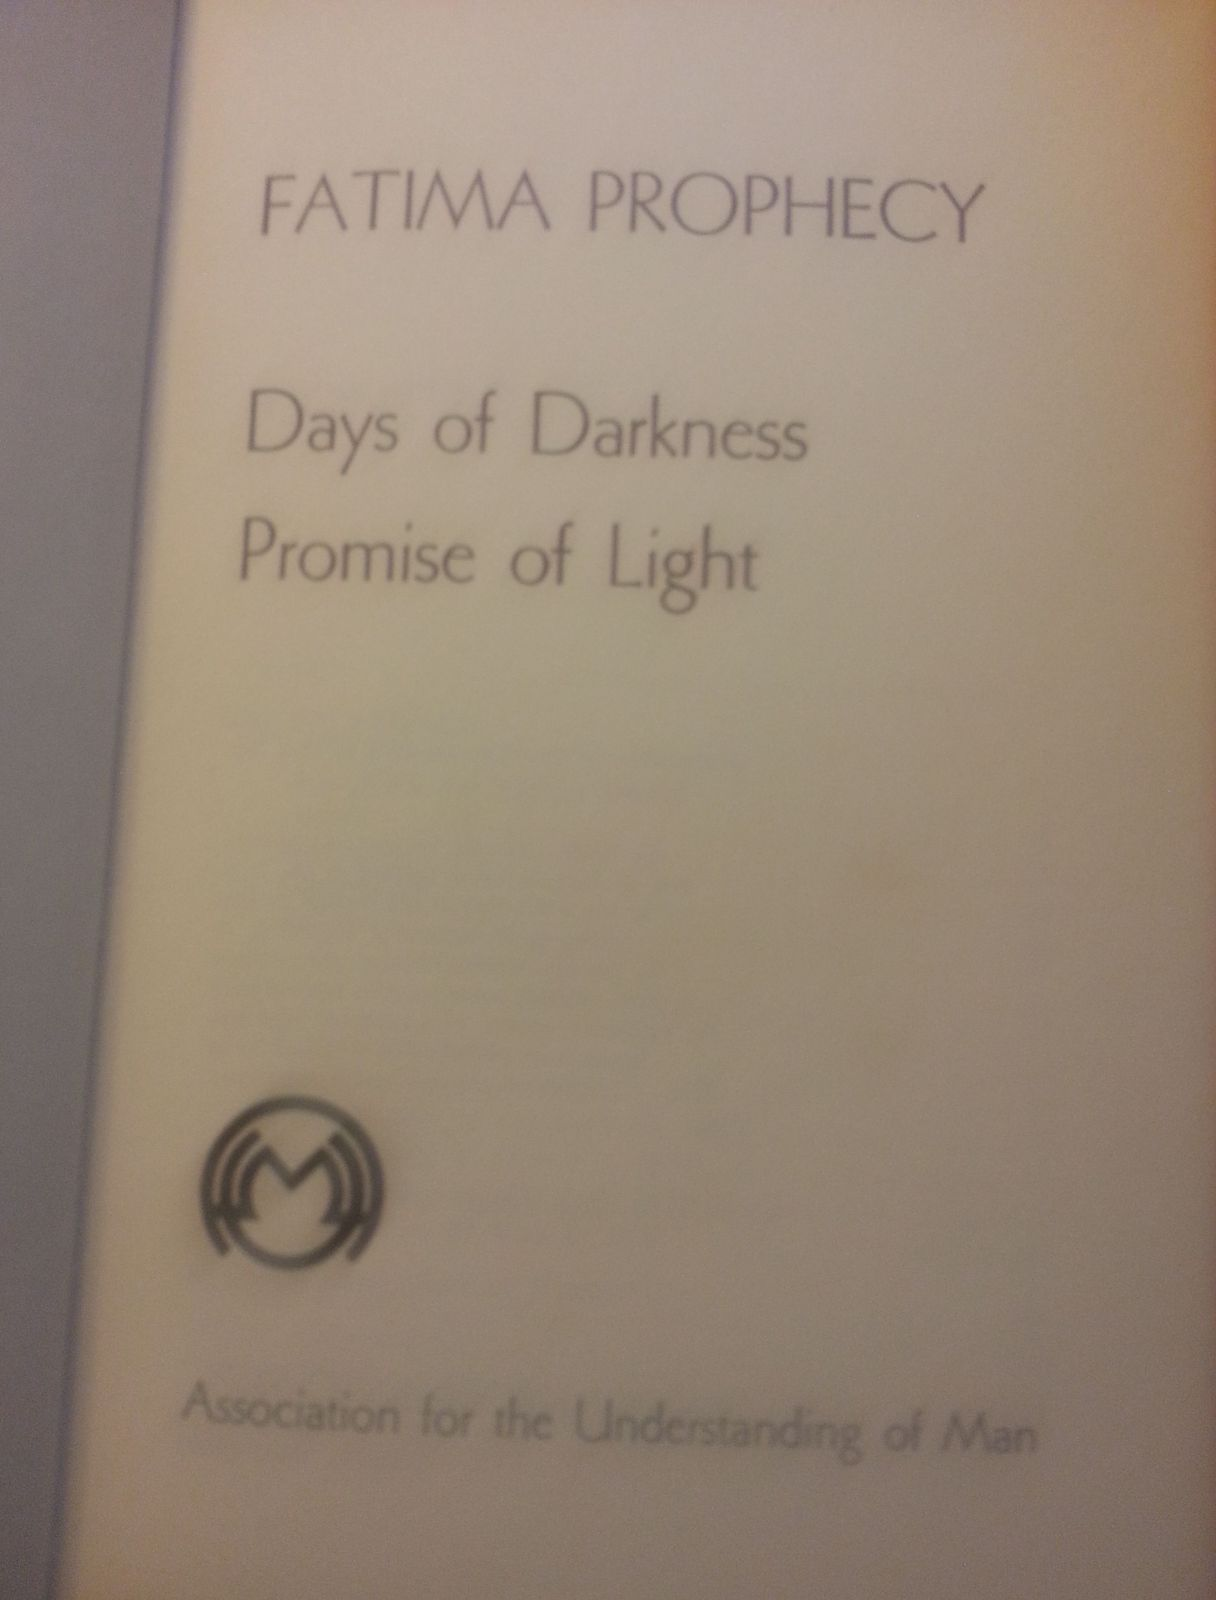 Fatima Prophecy  Days of Darkness  by Ray Stanford 1974 HBDJ